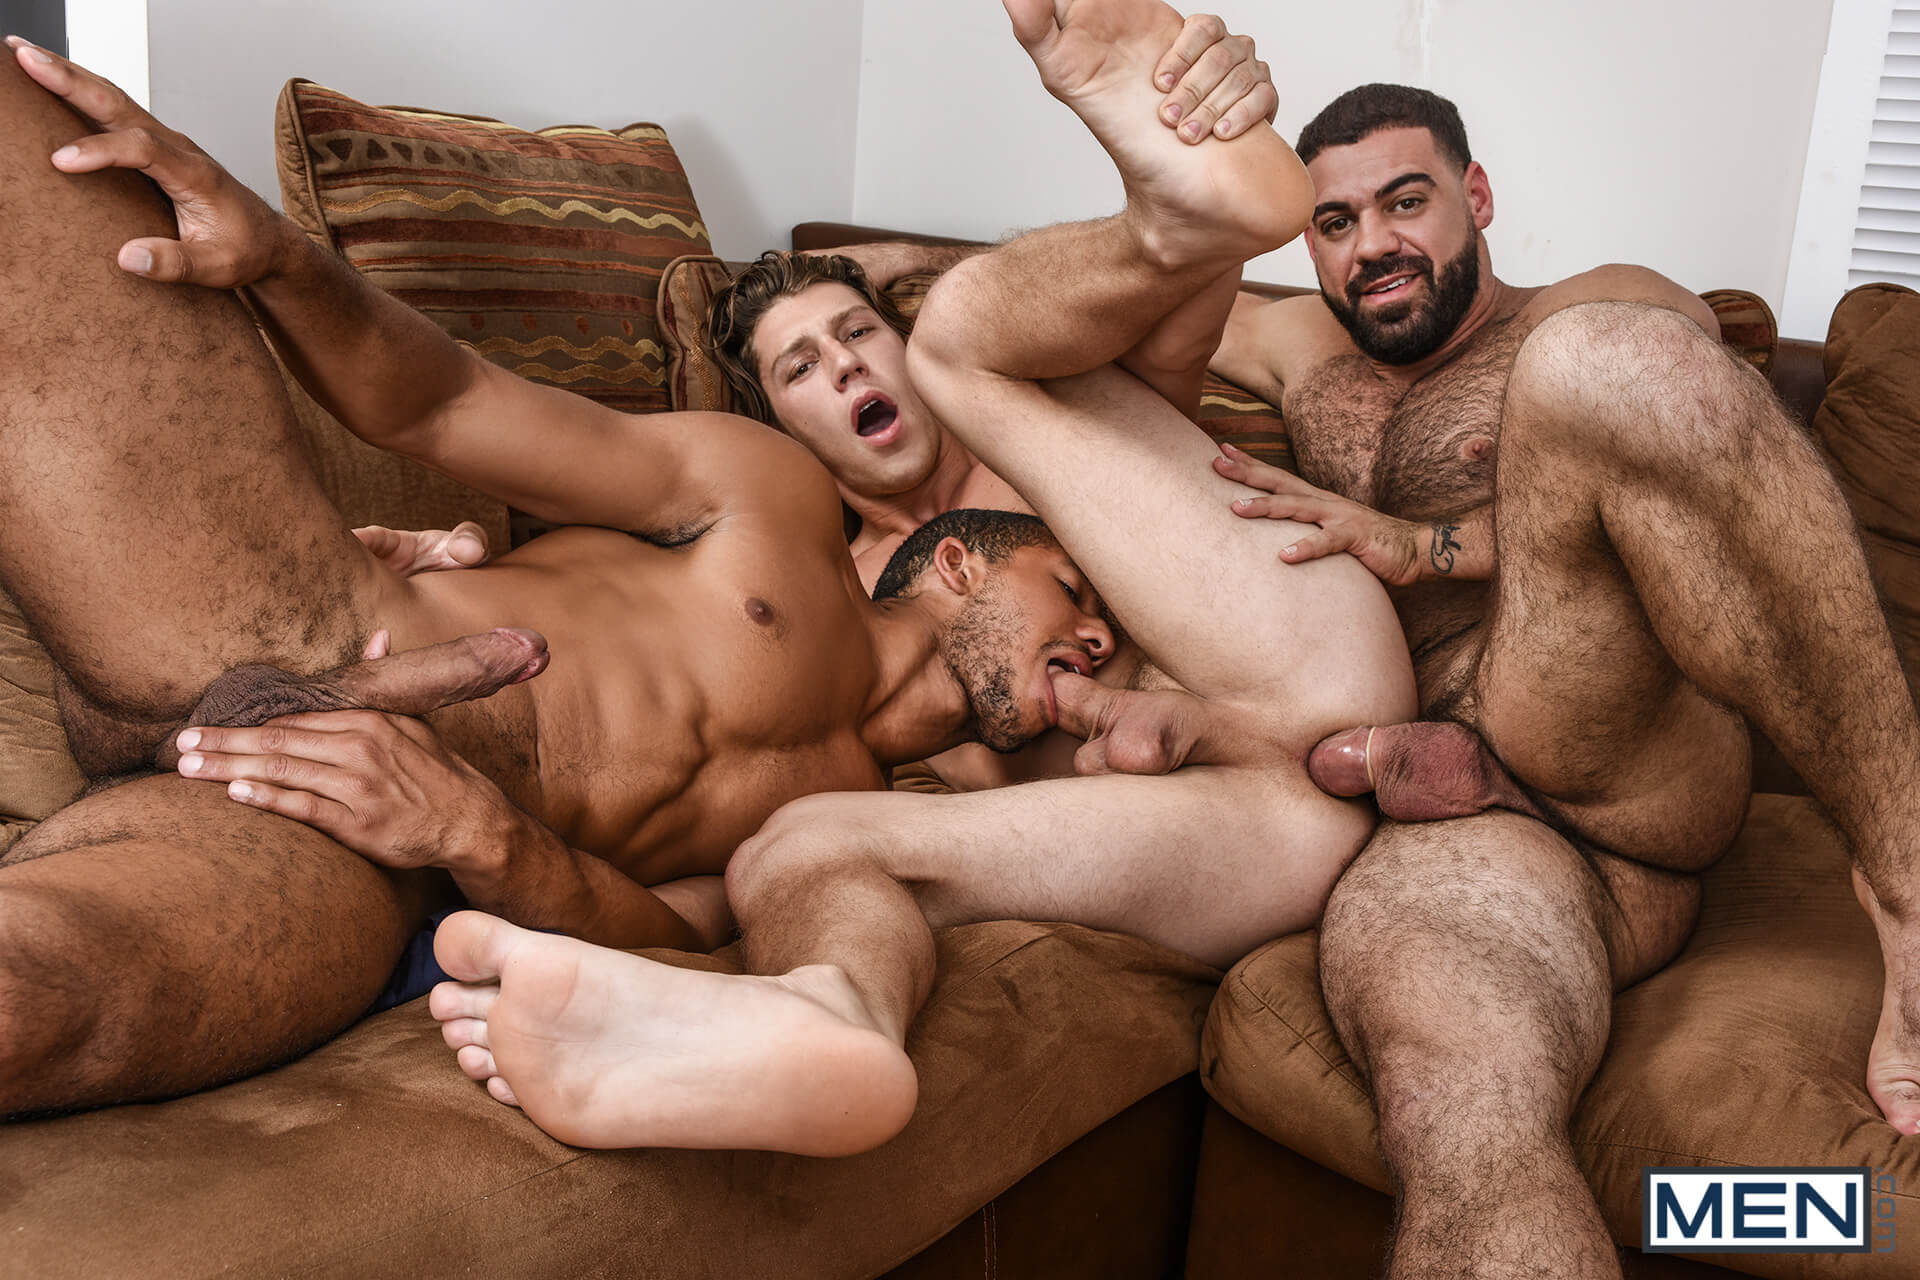 MEN.COM » Drill My Hole » Peepers Part 1 » Mike Maverick » Paul Canon » Ricky Larkin